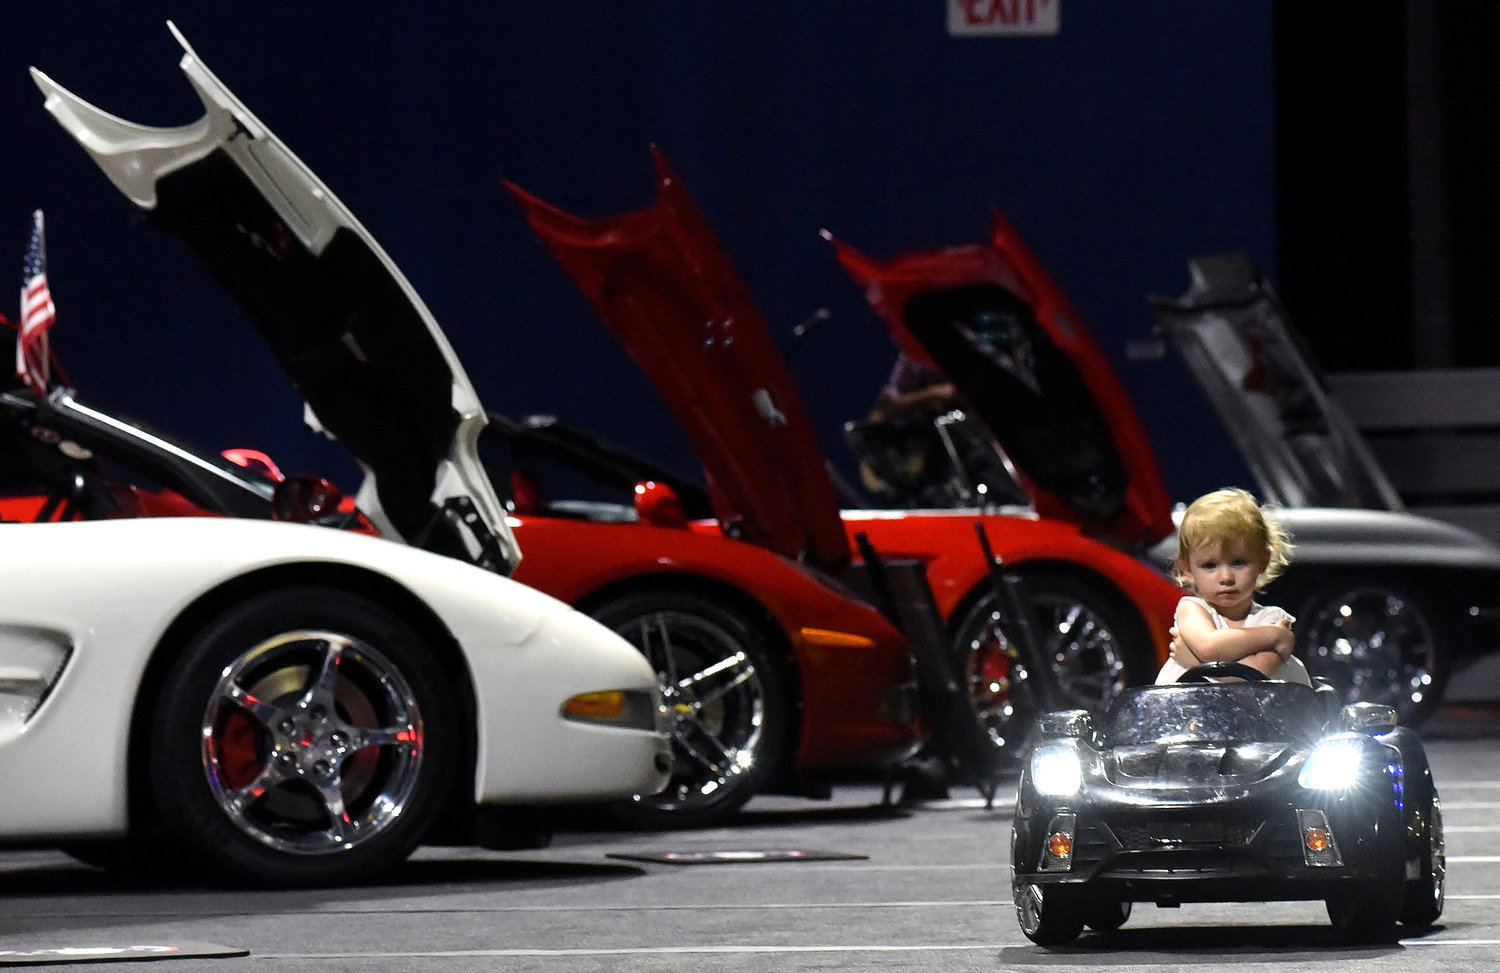 Two-year-old Amelia Barnhorn of Kennesaw cruises aisles of the My American Dream Corvette & Camaro MADness Show 2K18 at the LakePoint Champions Center Sept. 29.